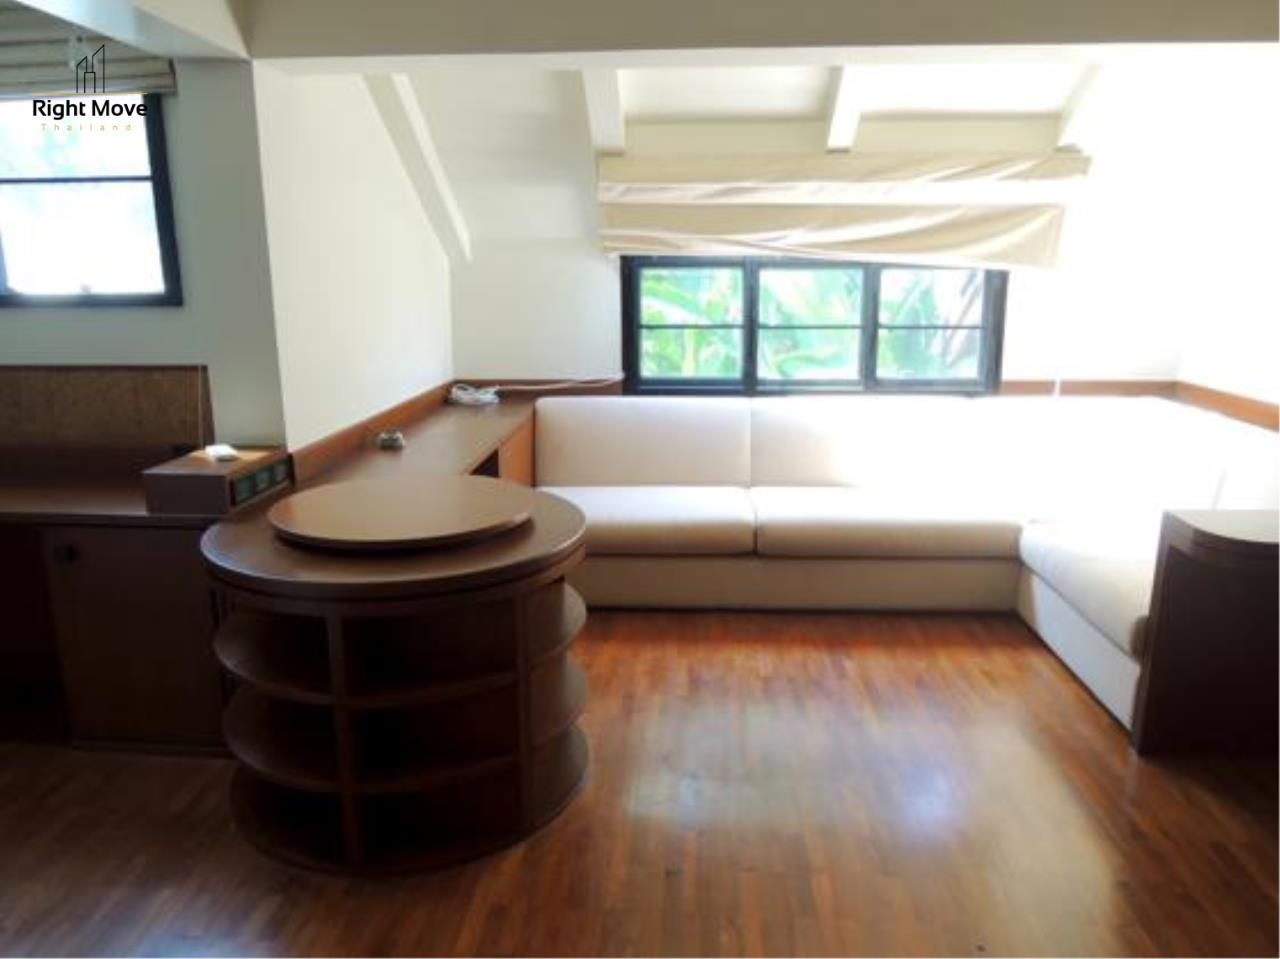 Right Move Thailand Agency's HR663 House With Private Pool For Rent 350,000 THB 4 Bedrooms 1000 Sqm 23